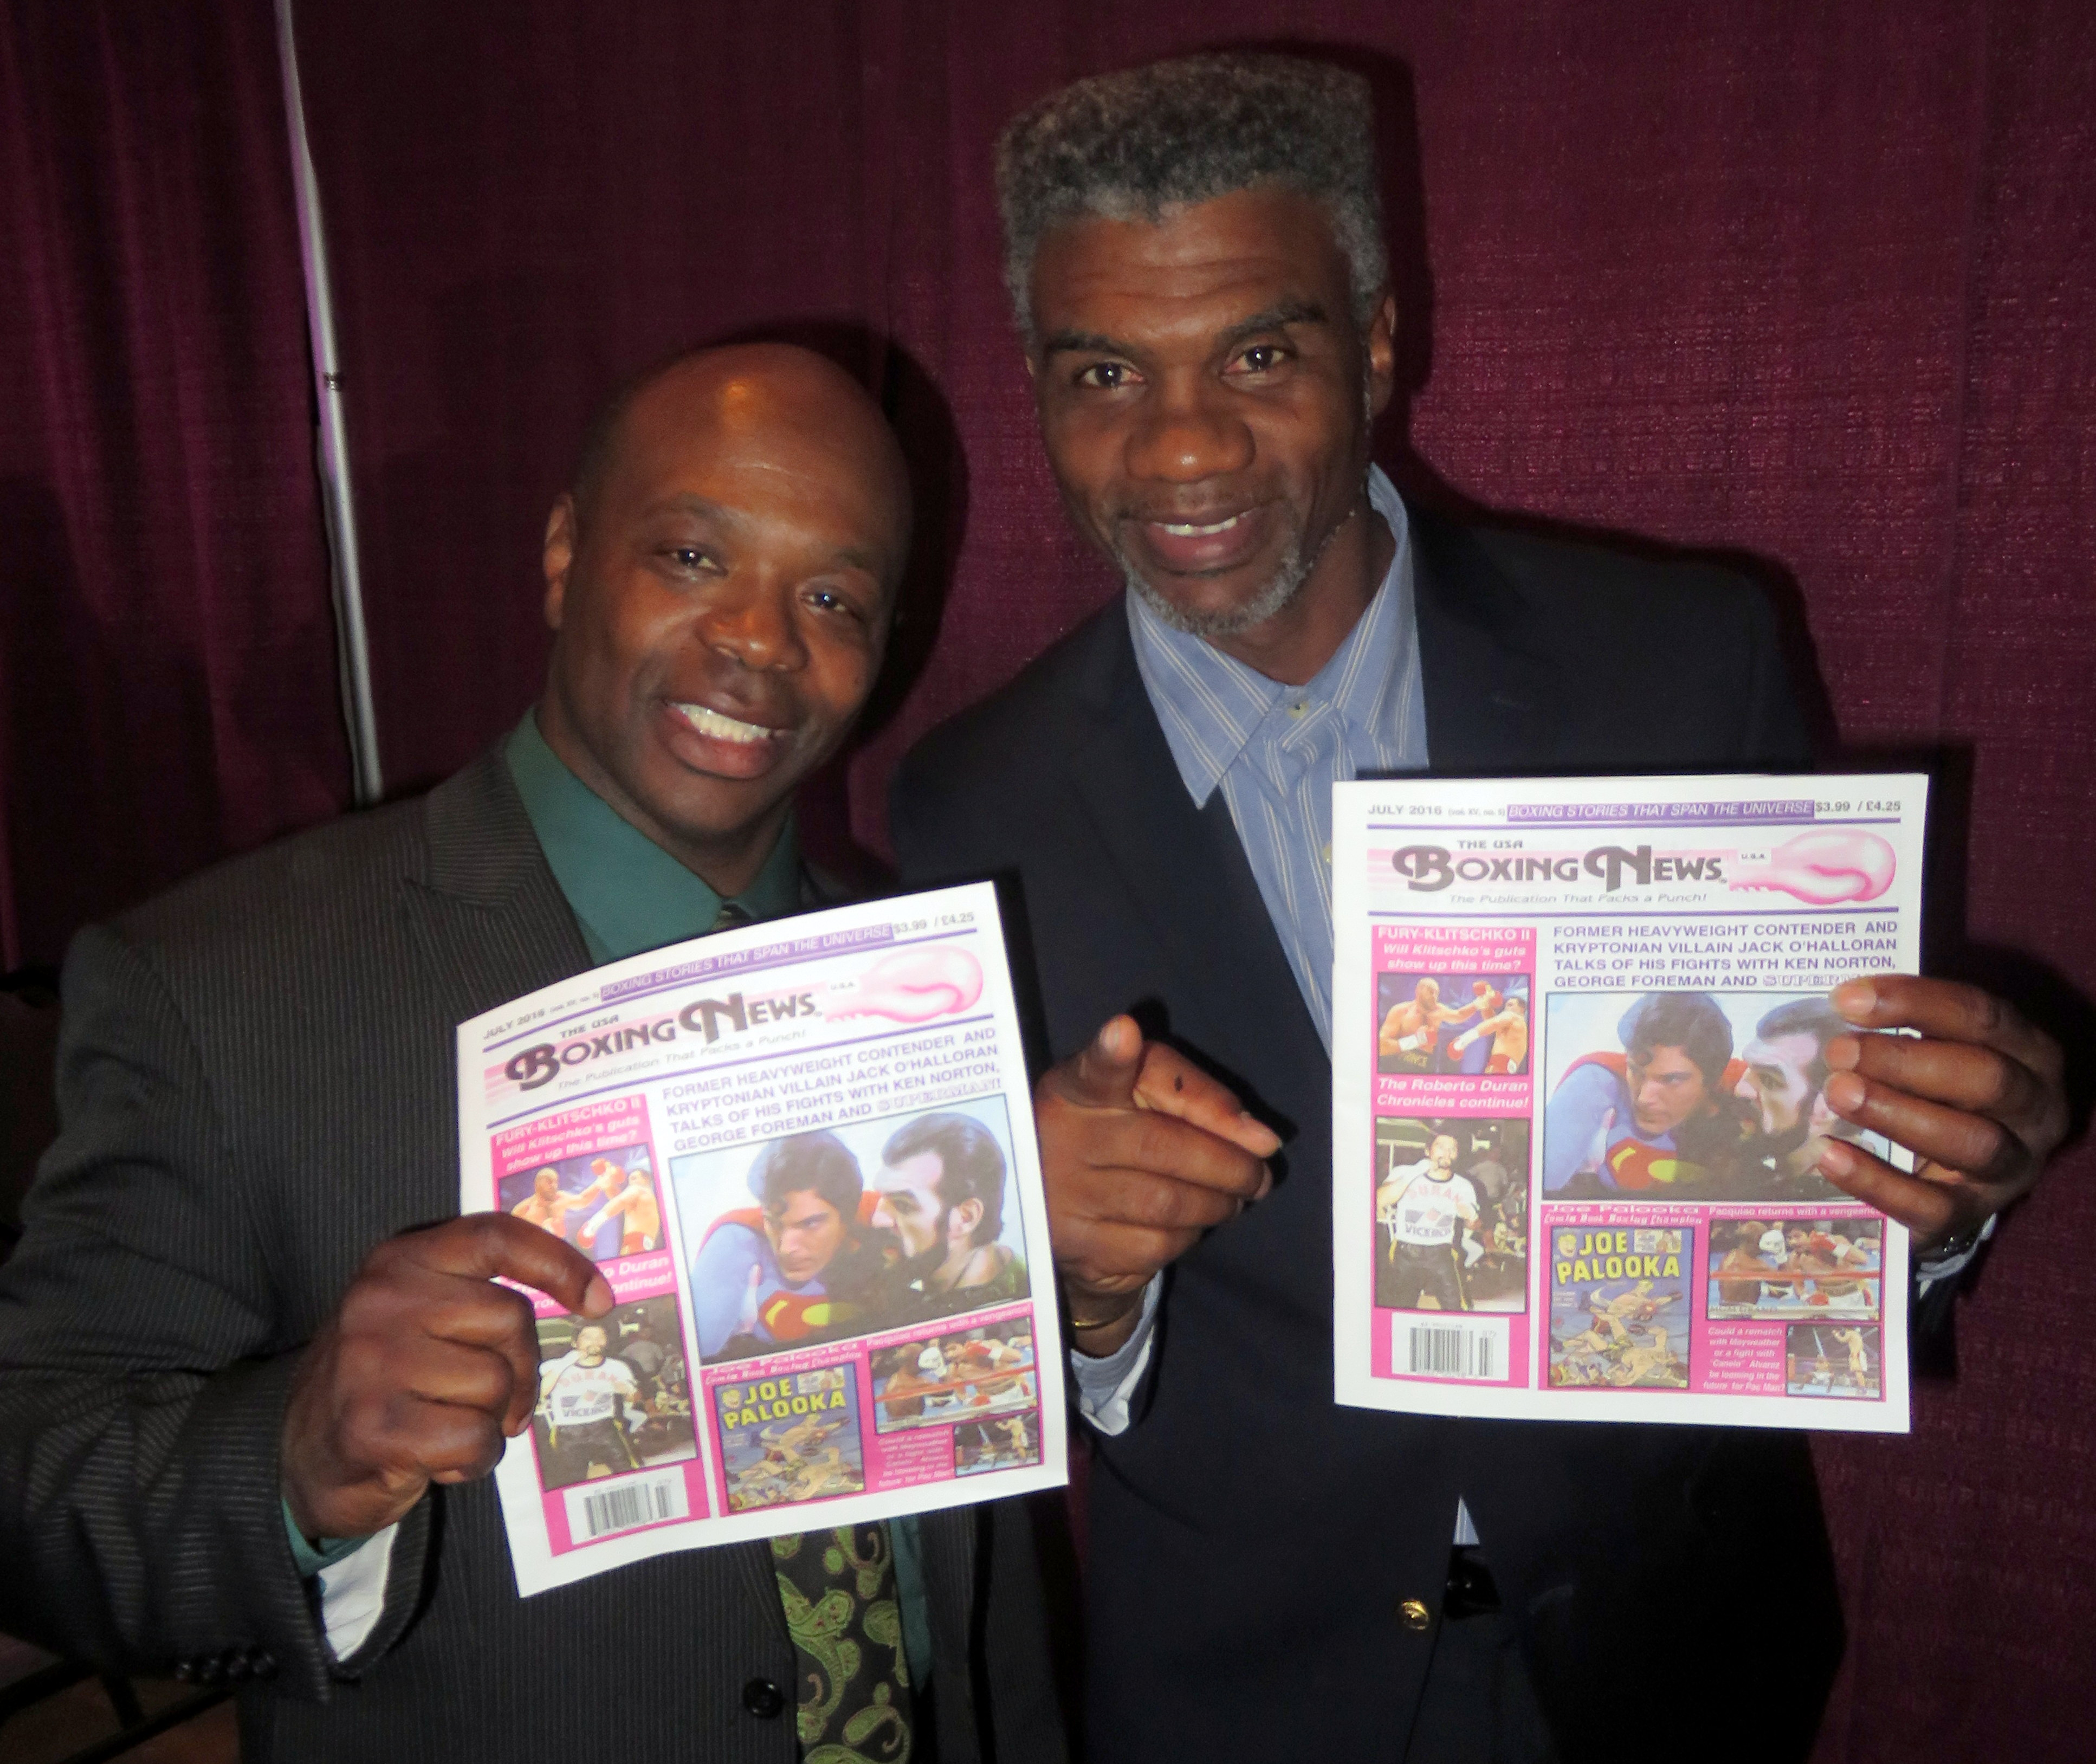 FINALThe USA Boxing News with former IBF super feather king and WBC super bantam champ Tracey Harris Patterson.